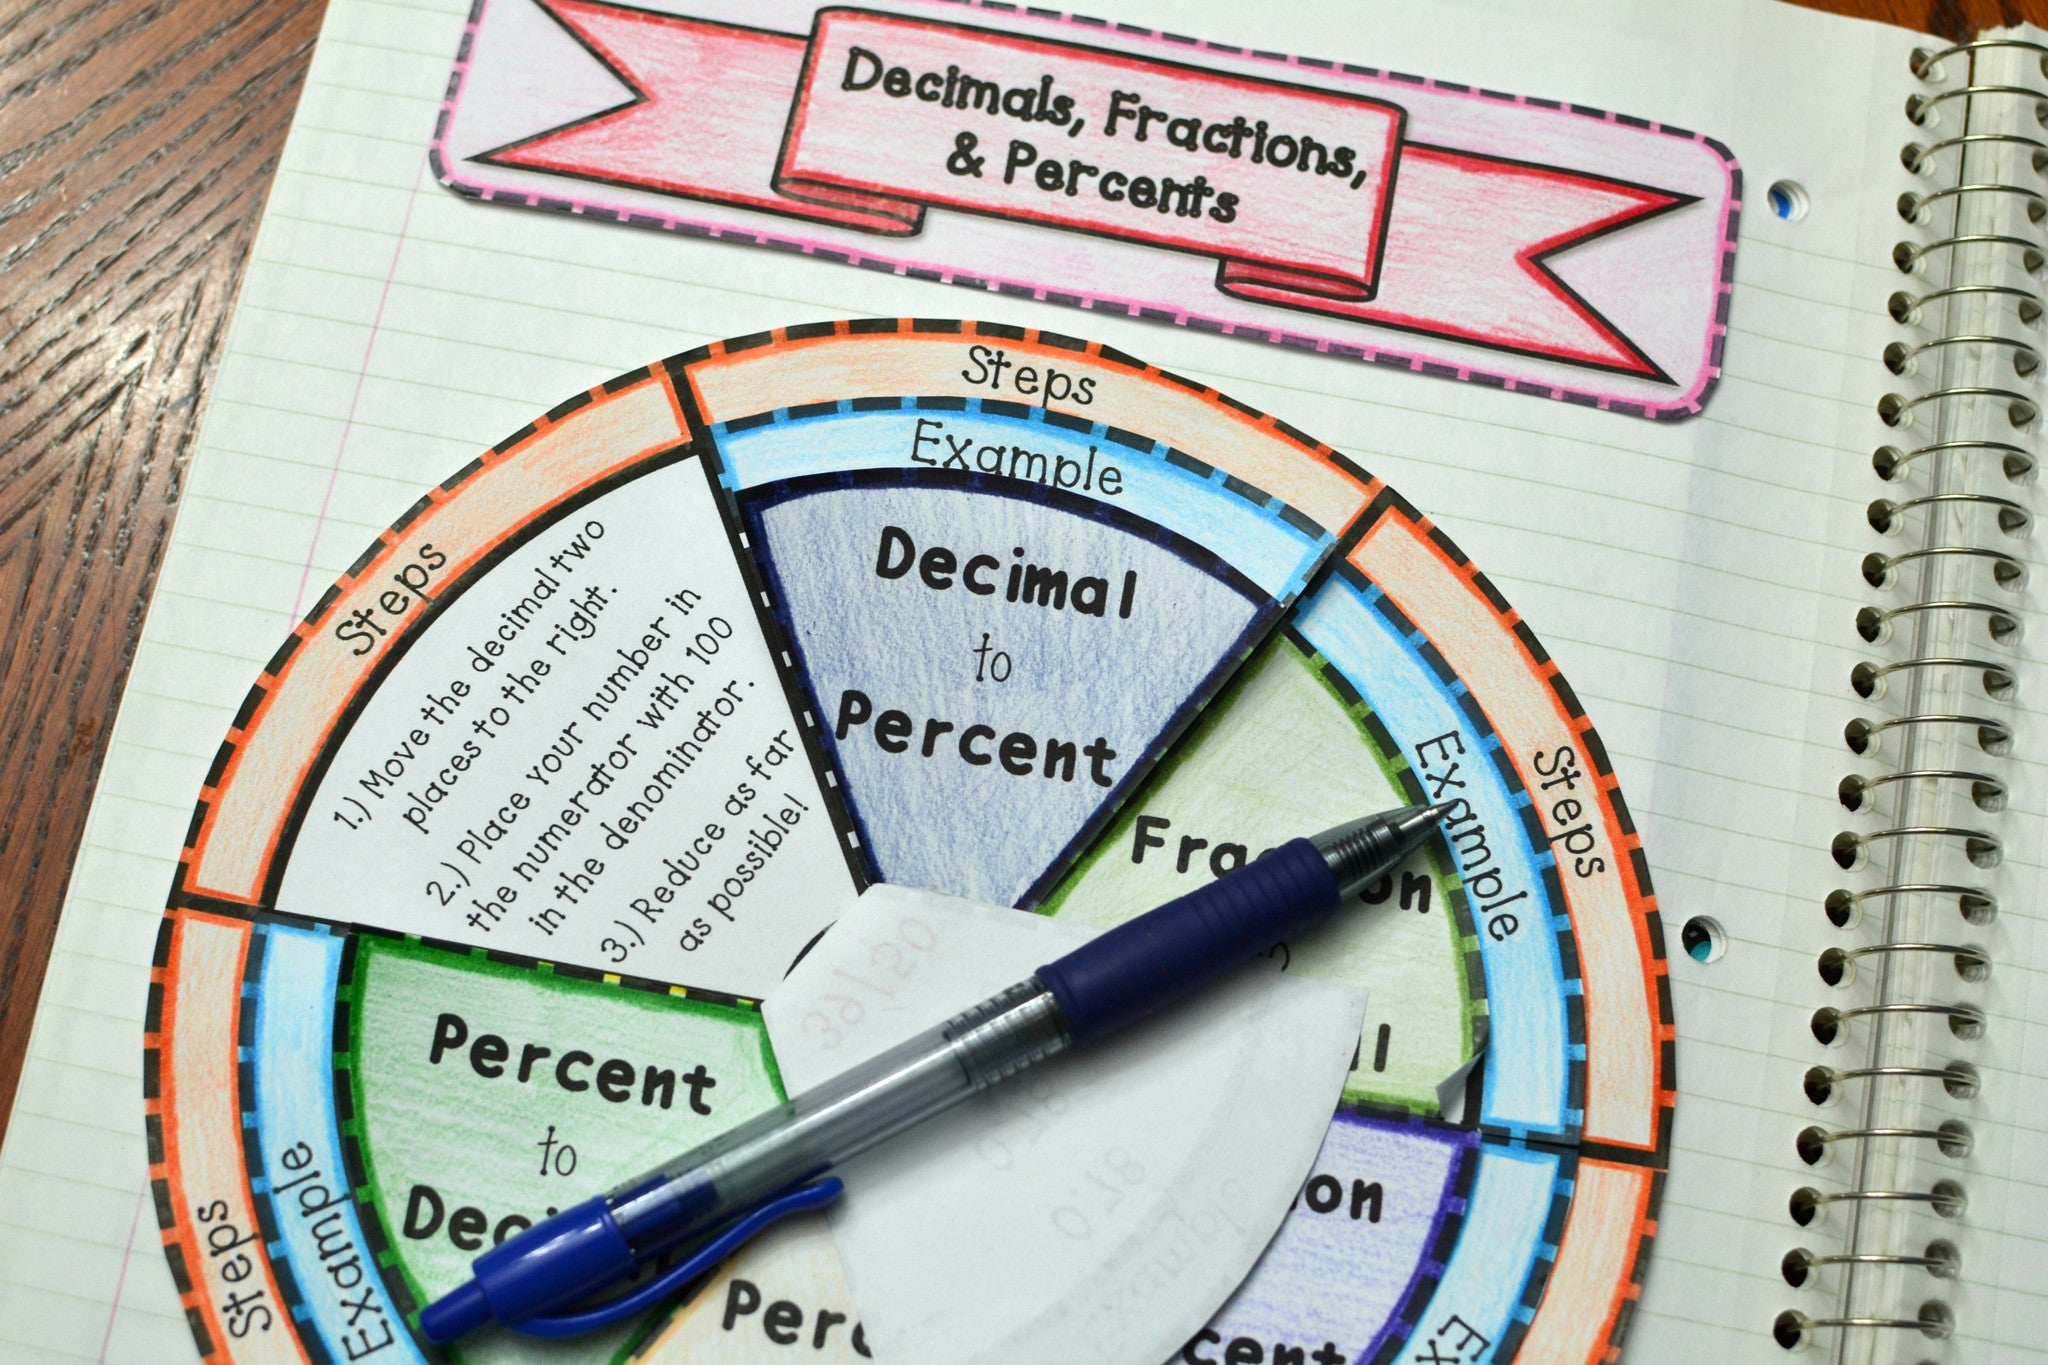 Decimals, Fractions, and Percents Wheel Foldable - Math in Demand